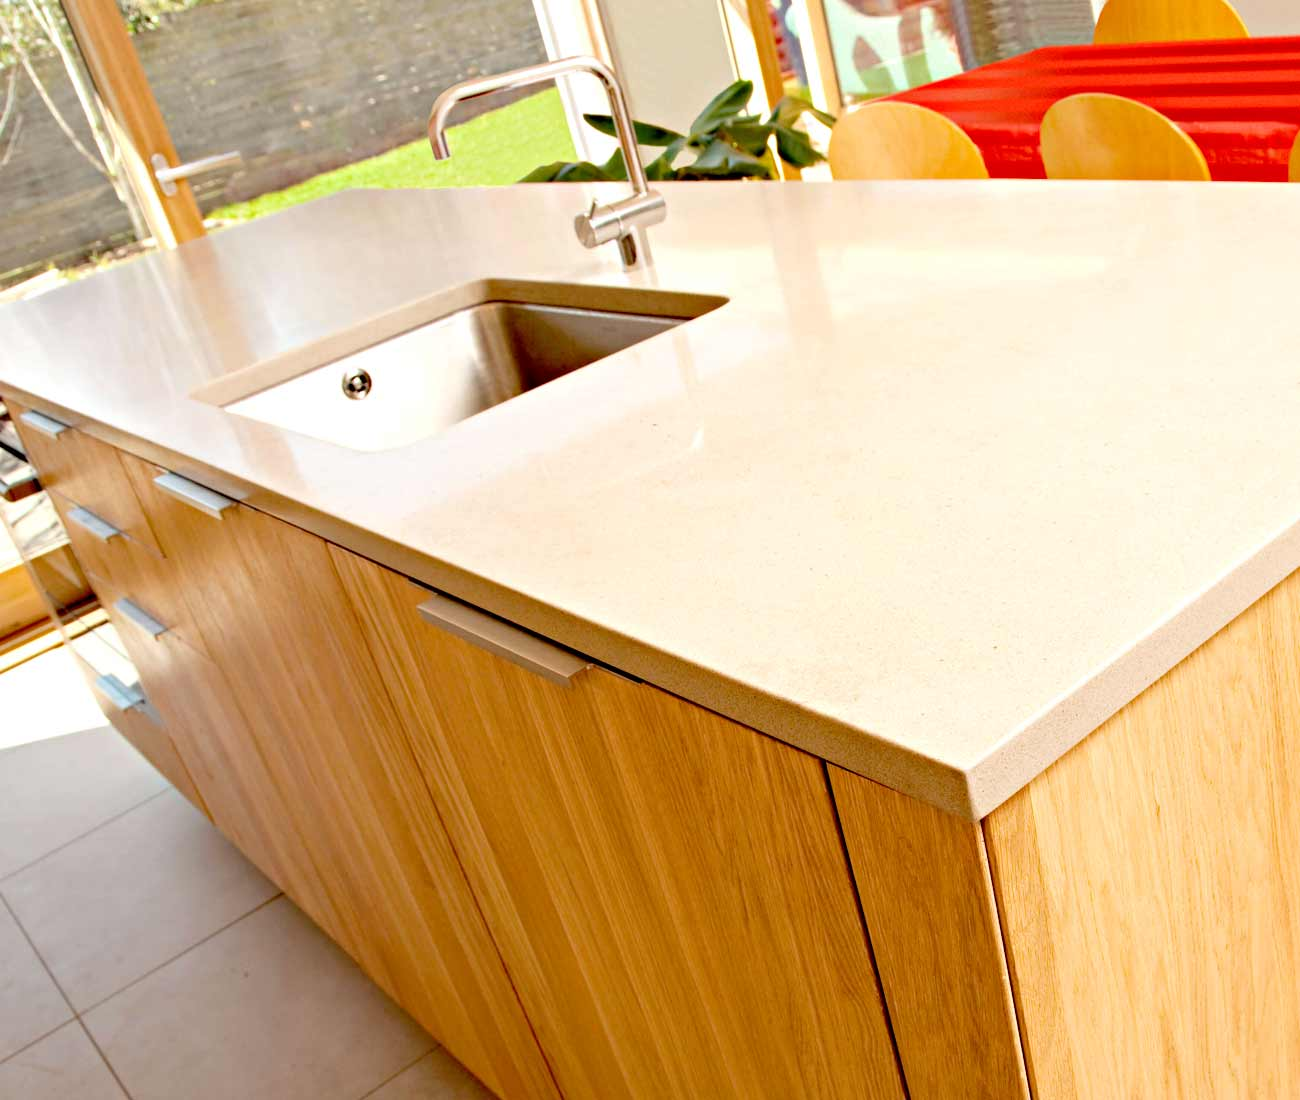 recycled-worktop2